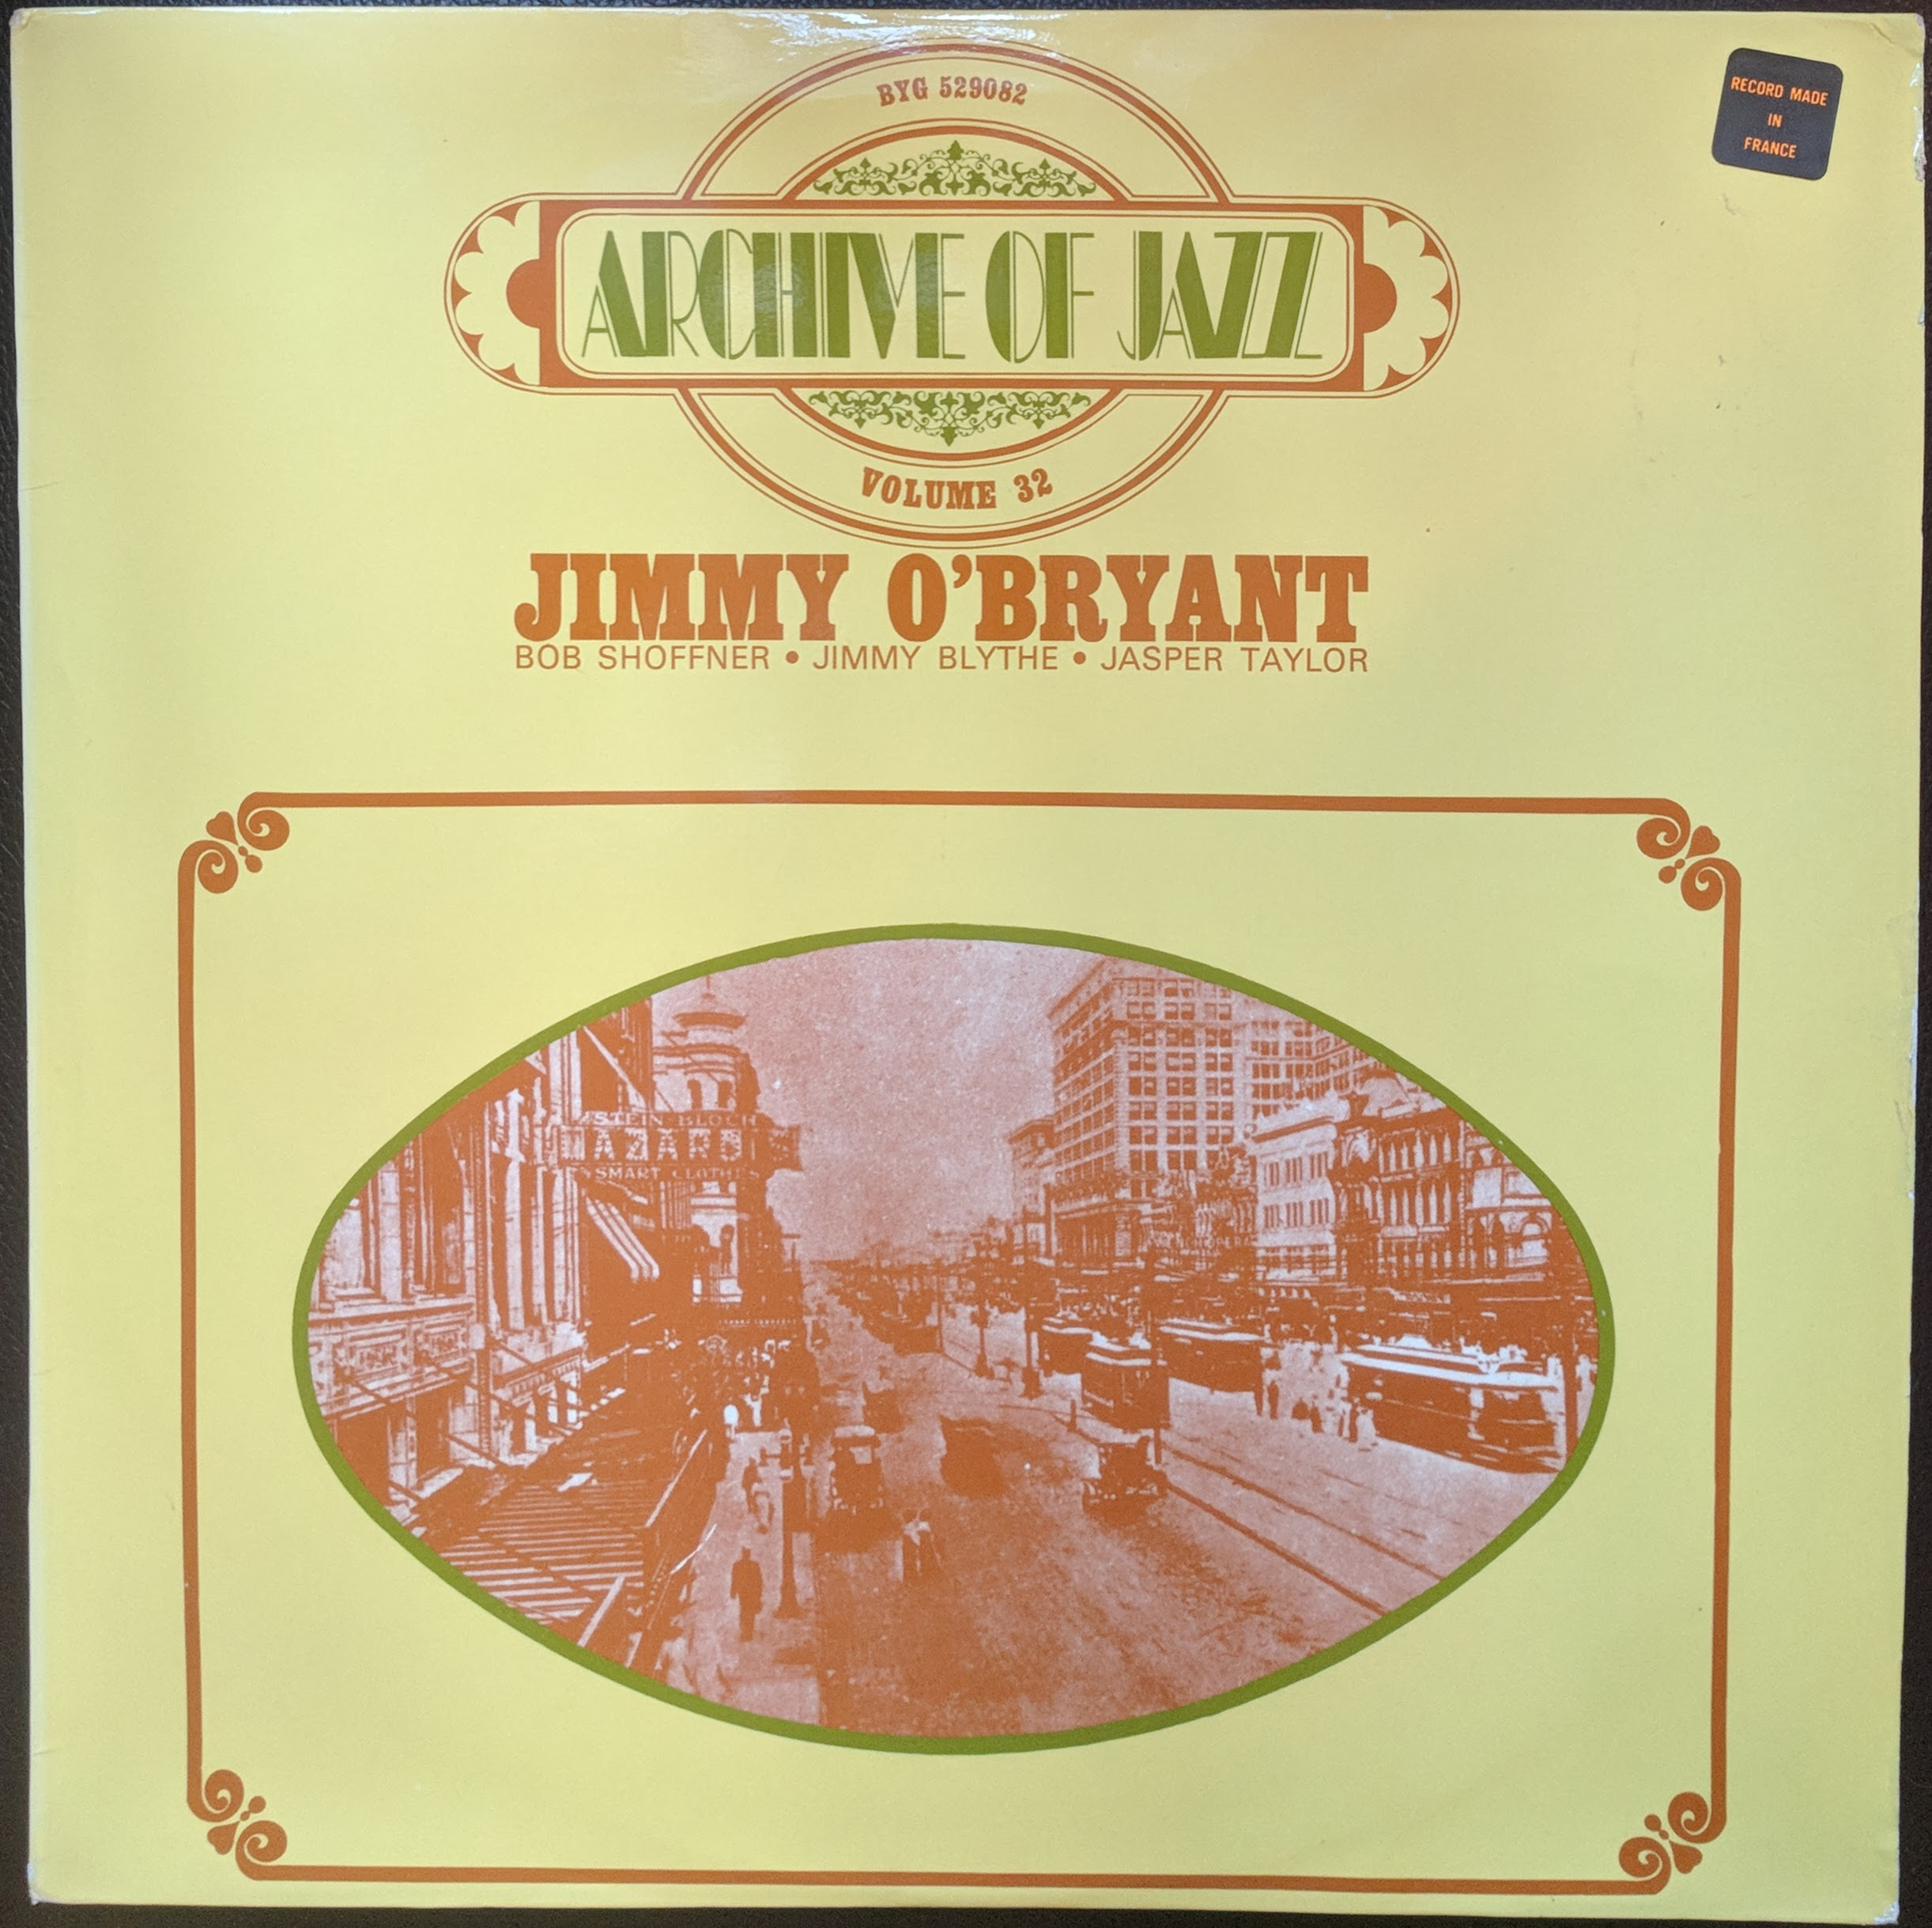 JIMMY O'BRYANT - Archive Of Jazz Volume 32 cover